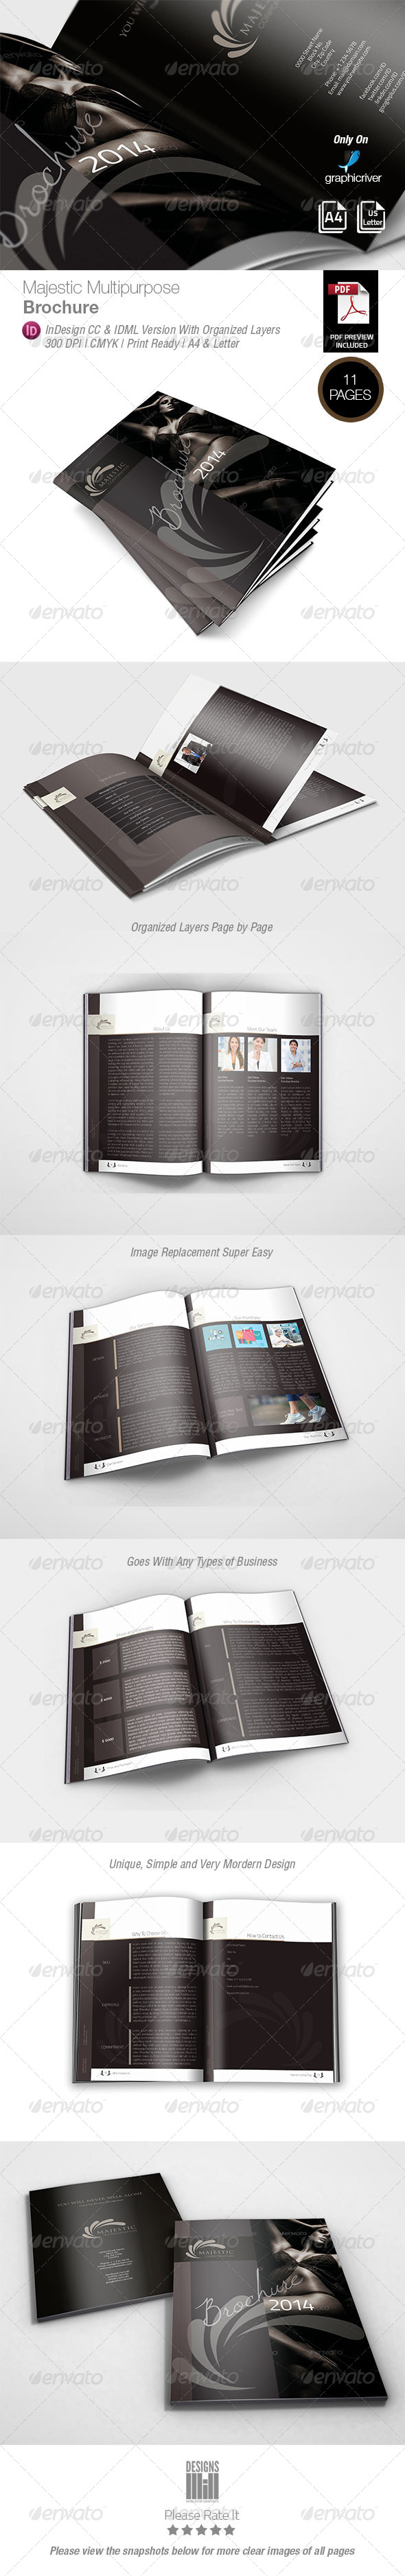 Majestic Multipurpose Brochure - Corporate Brochures